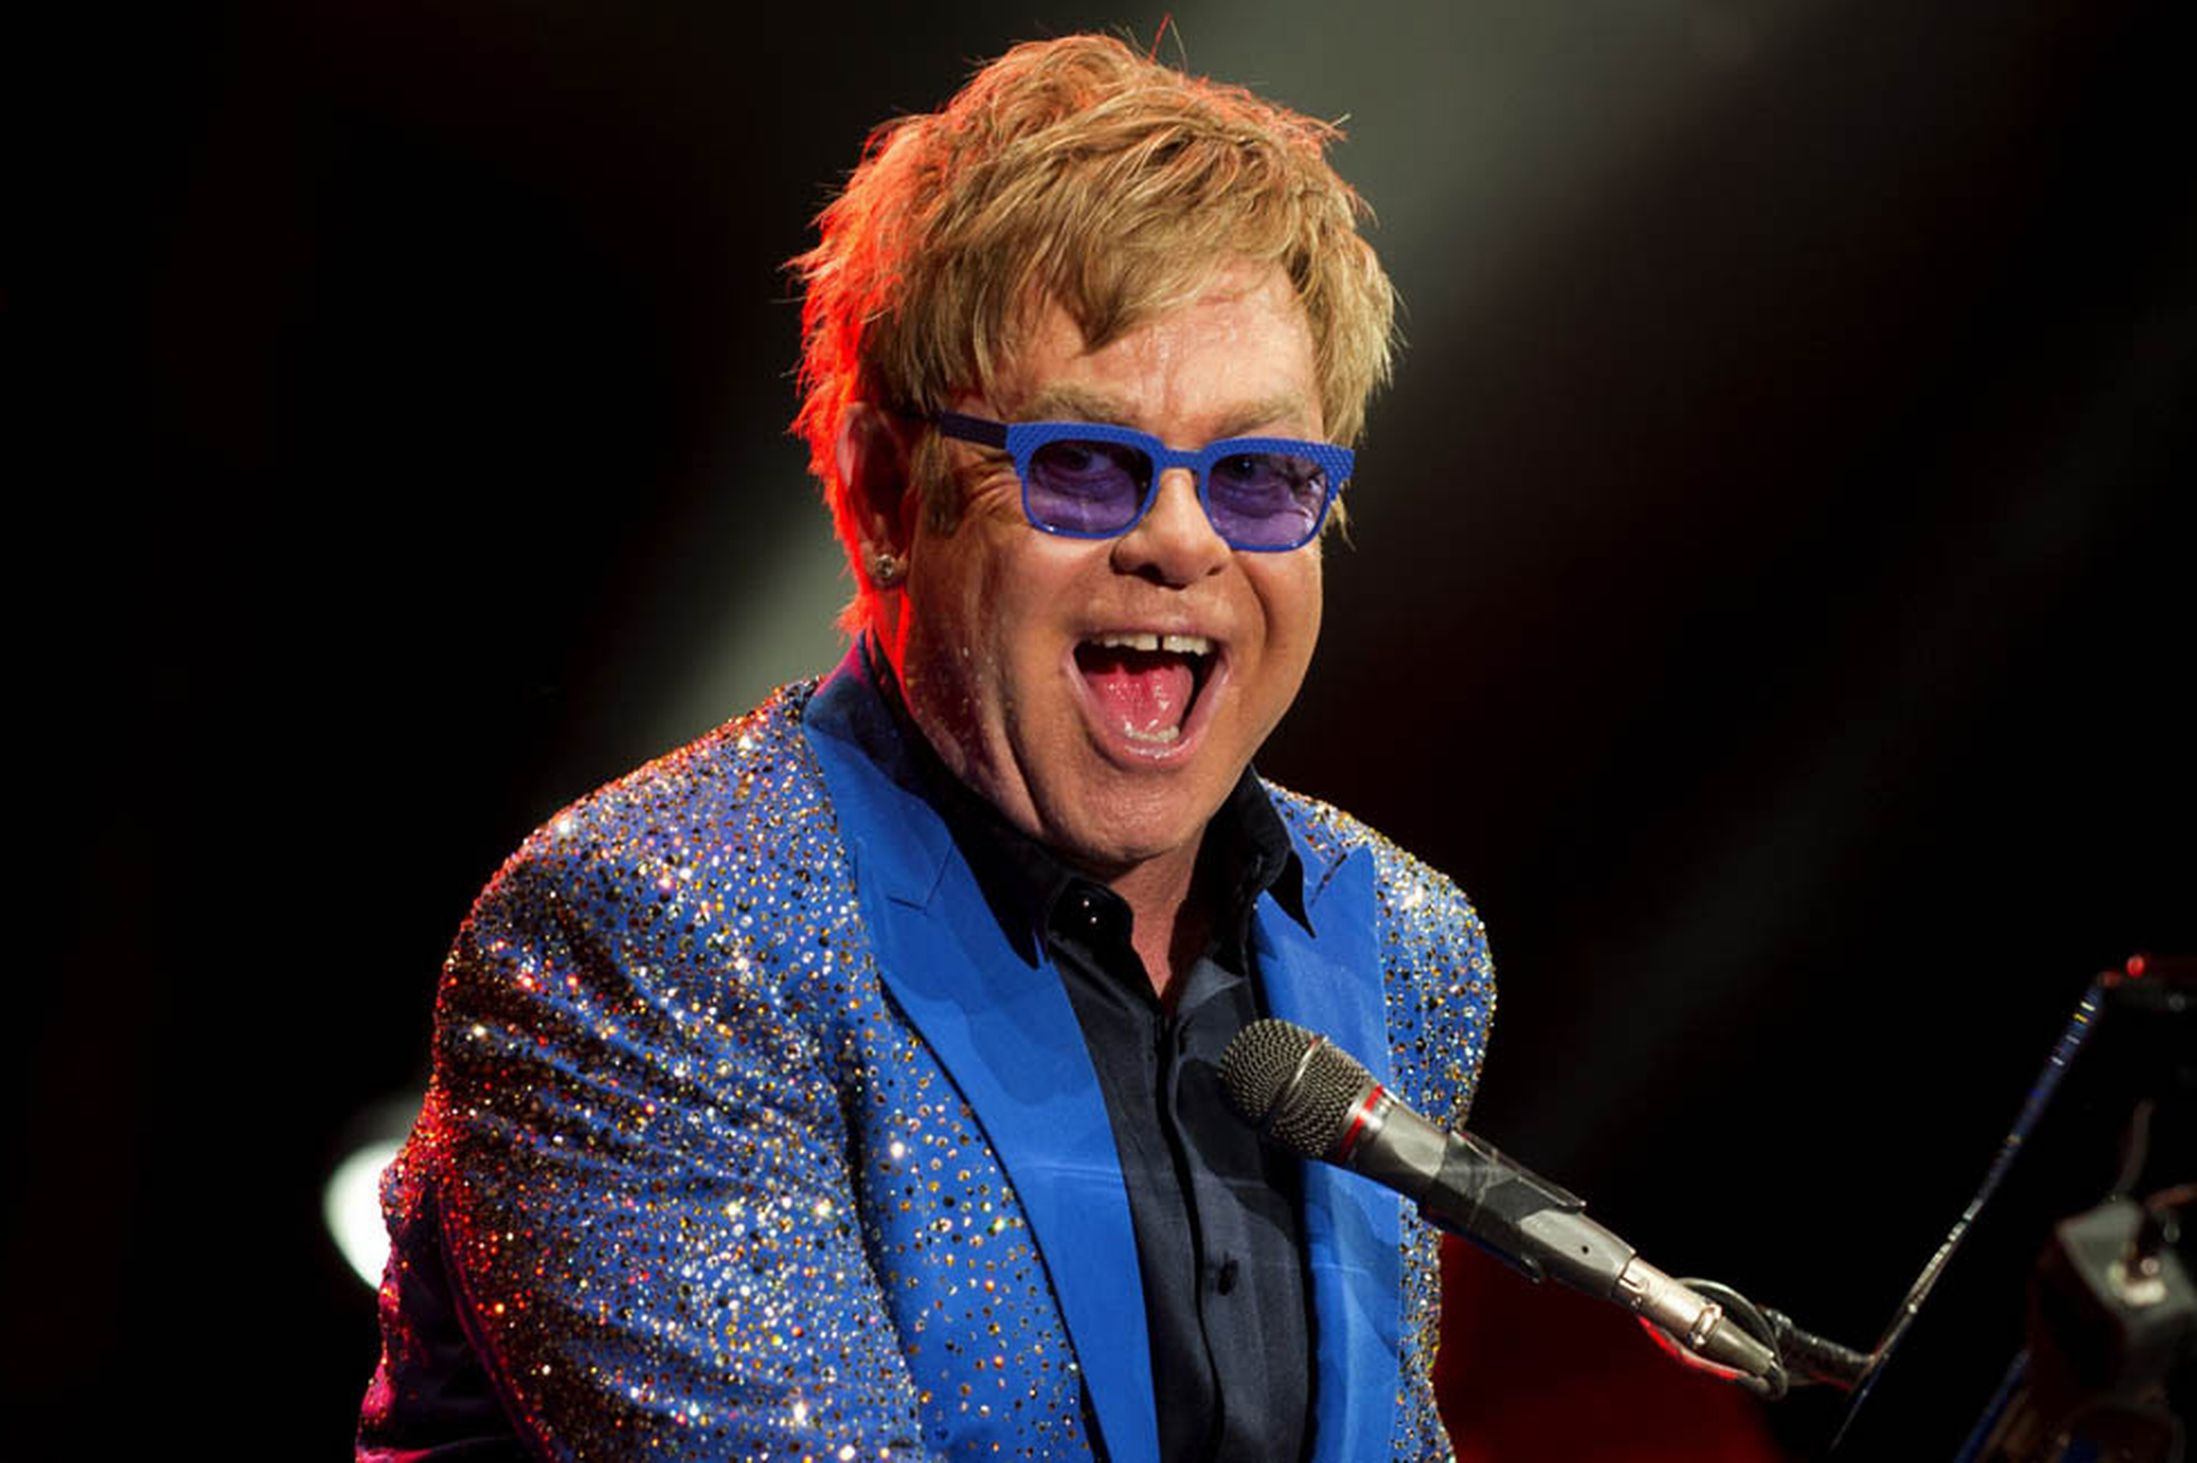 Elton John Rock Singer Songwriter Pianist Cbe Commander 1995 2197x1463